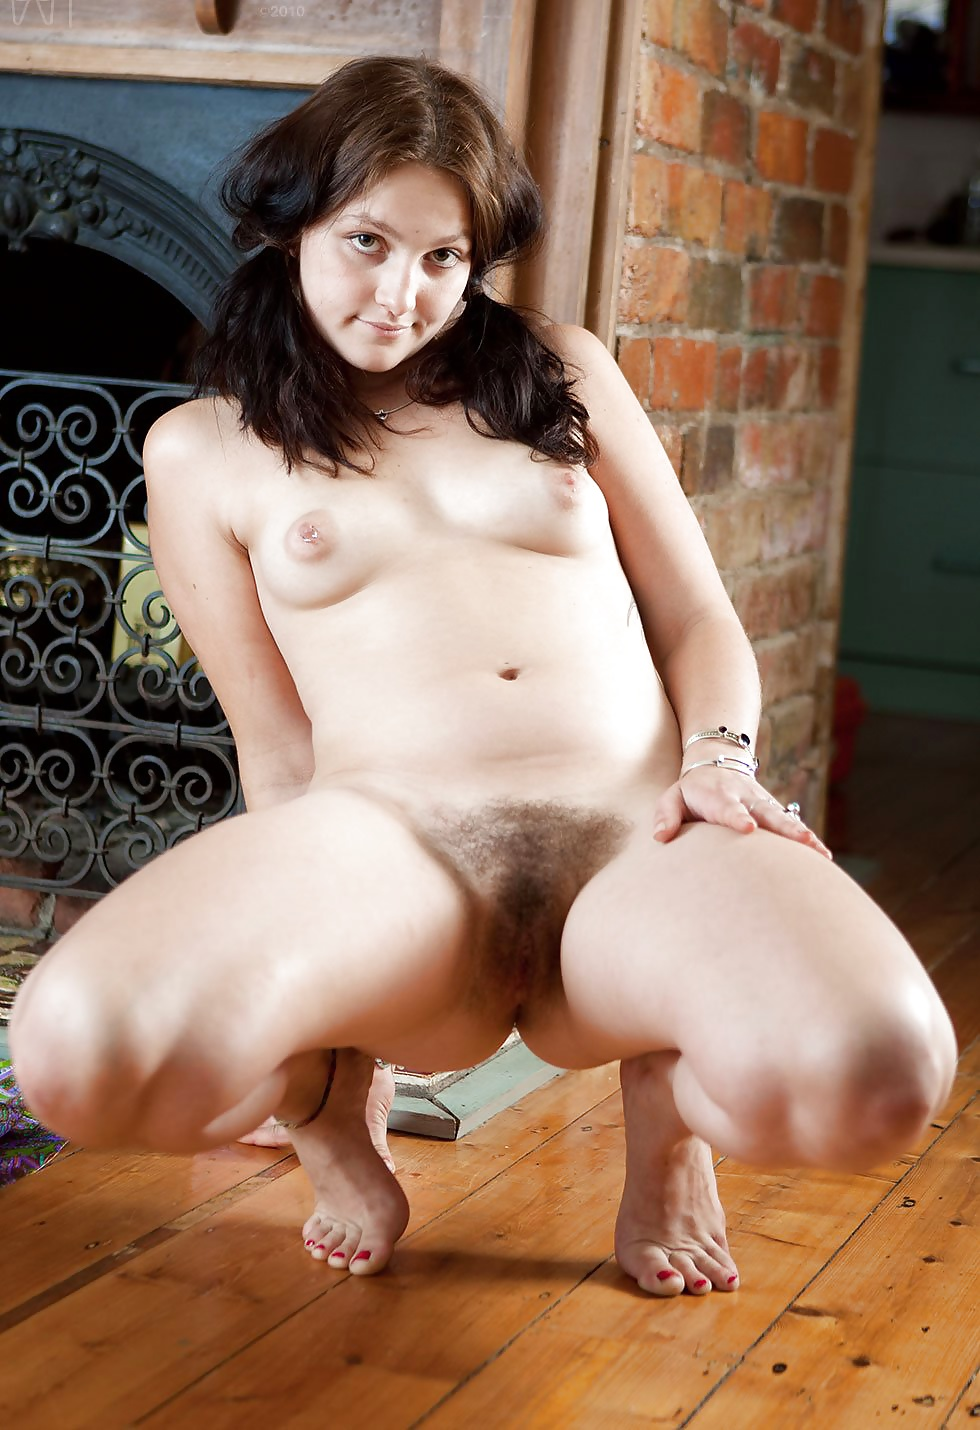 Gipsy girl nude fake #14